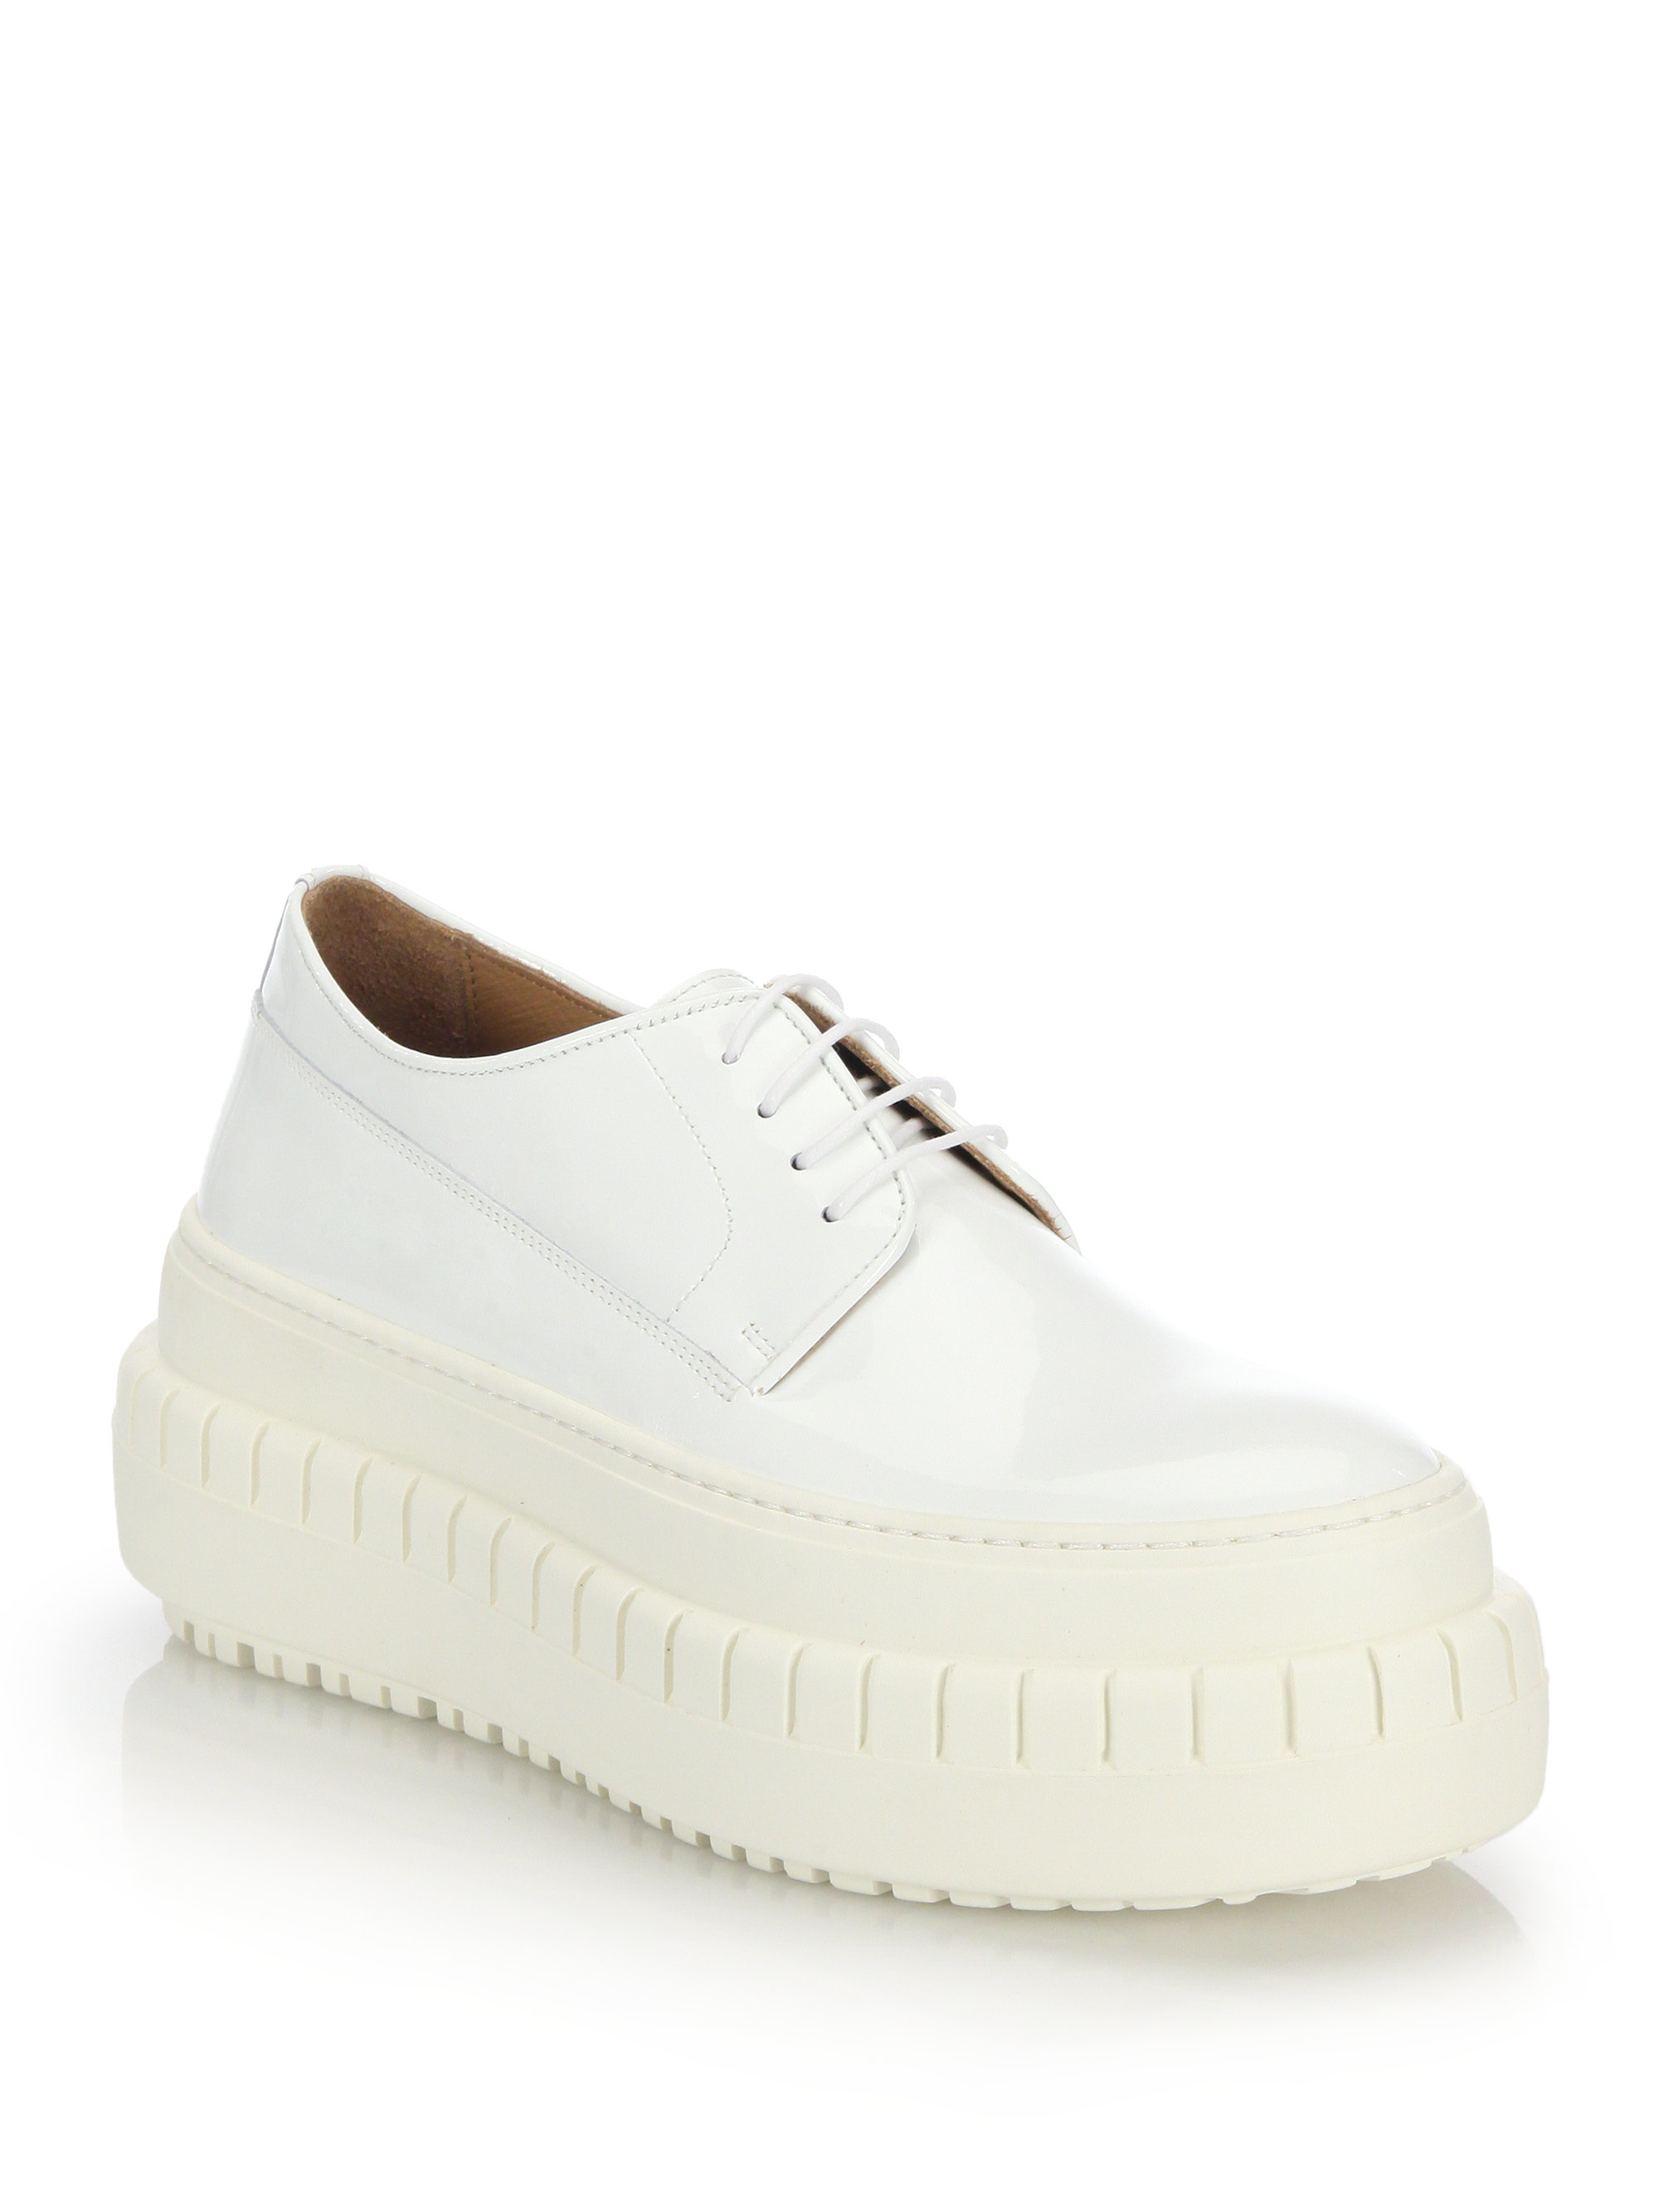 acne studios sacha leather platform lace up shoes in white